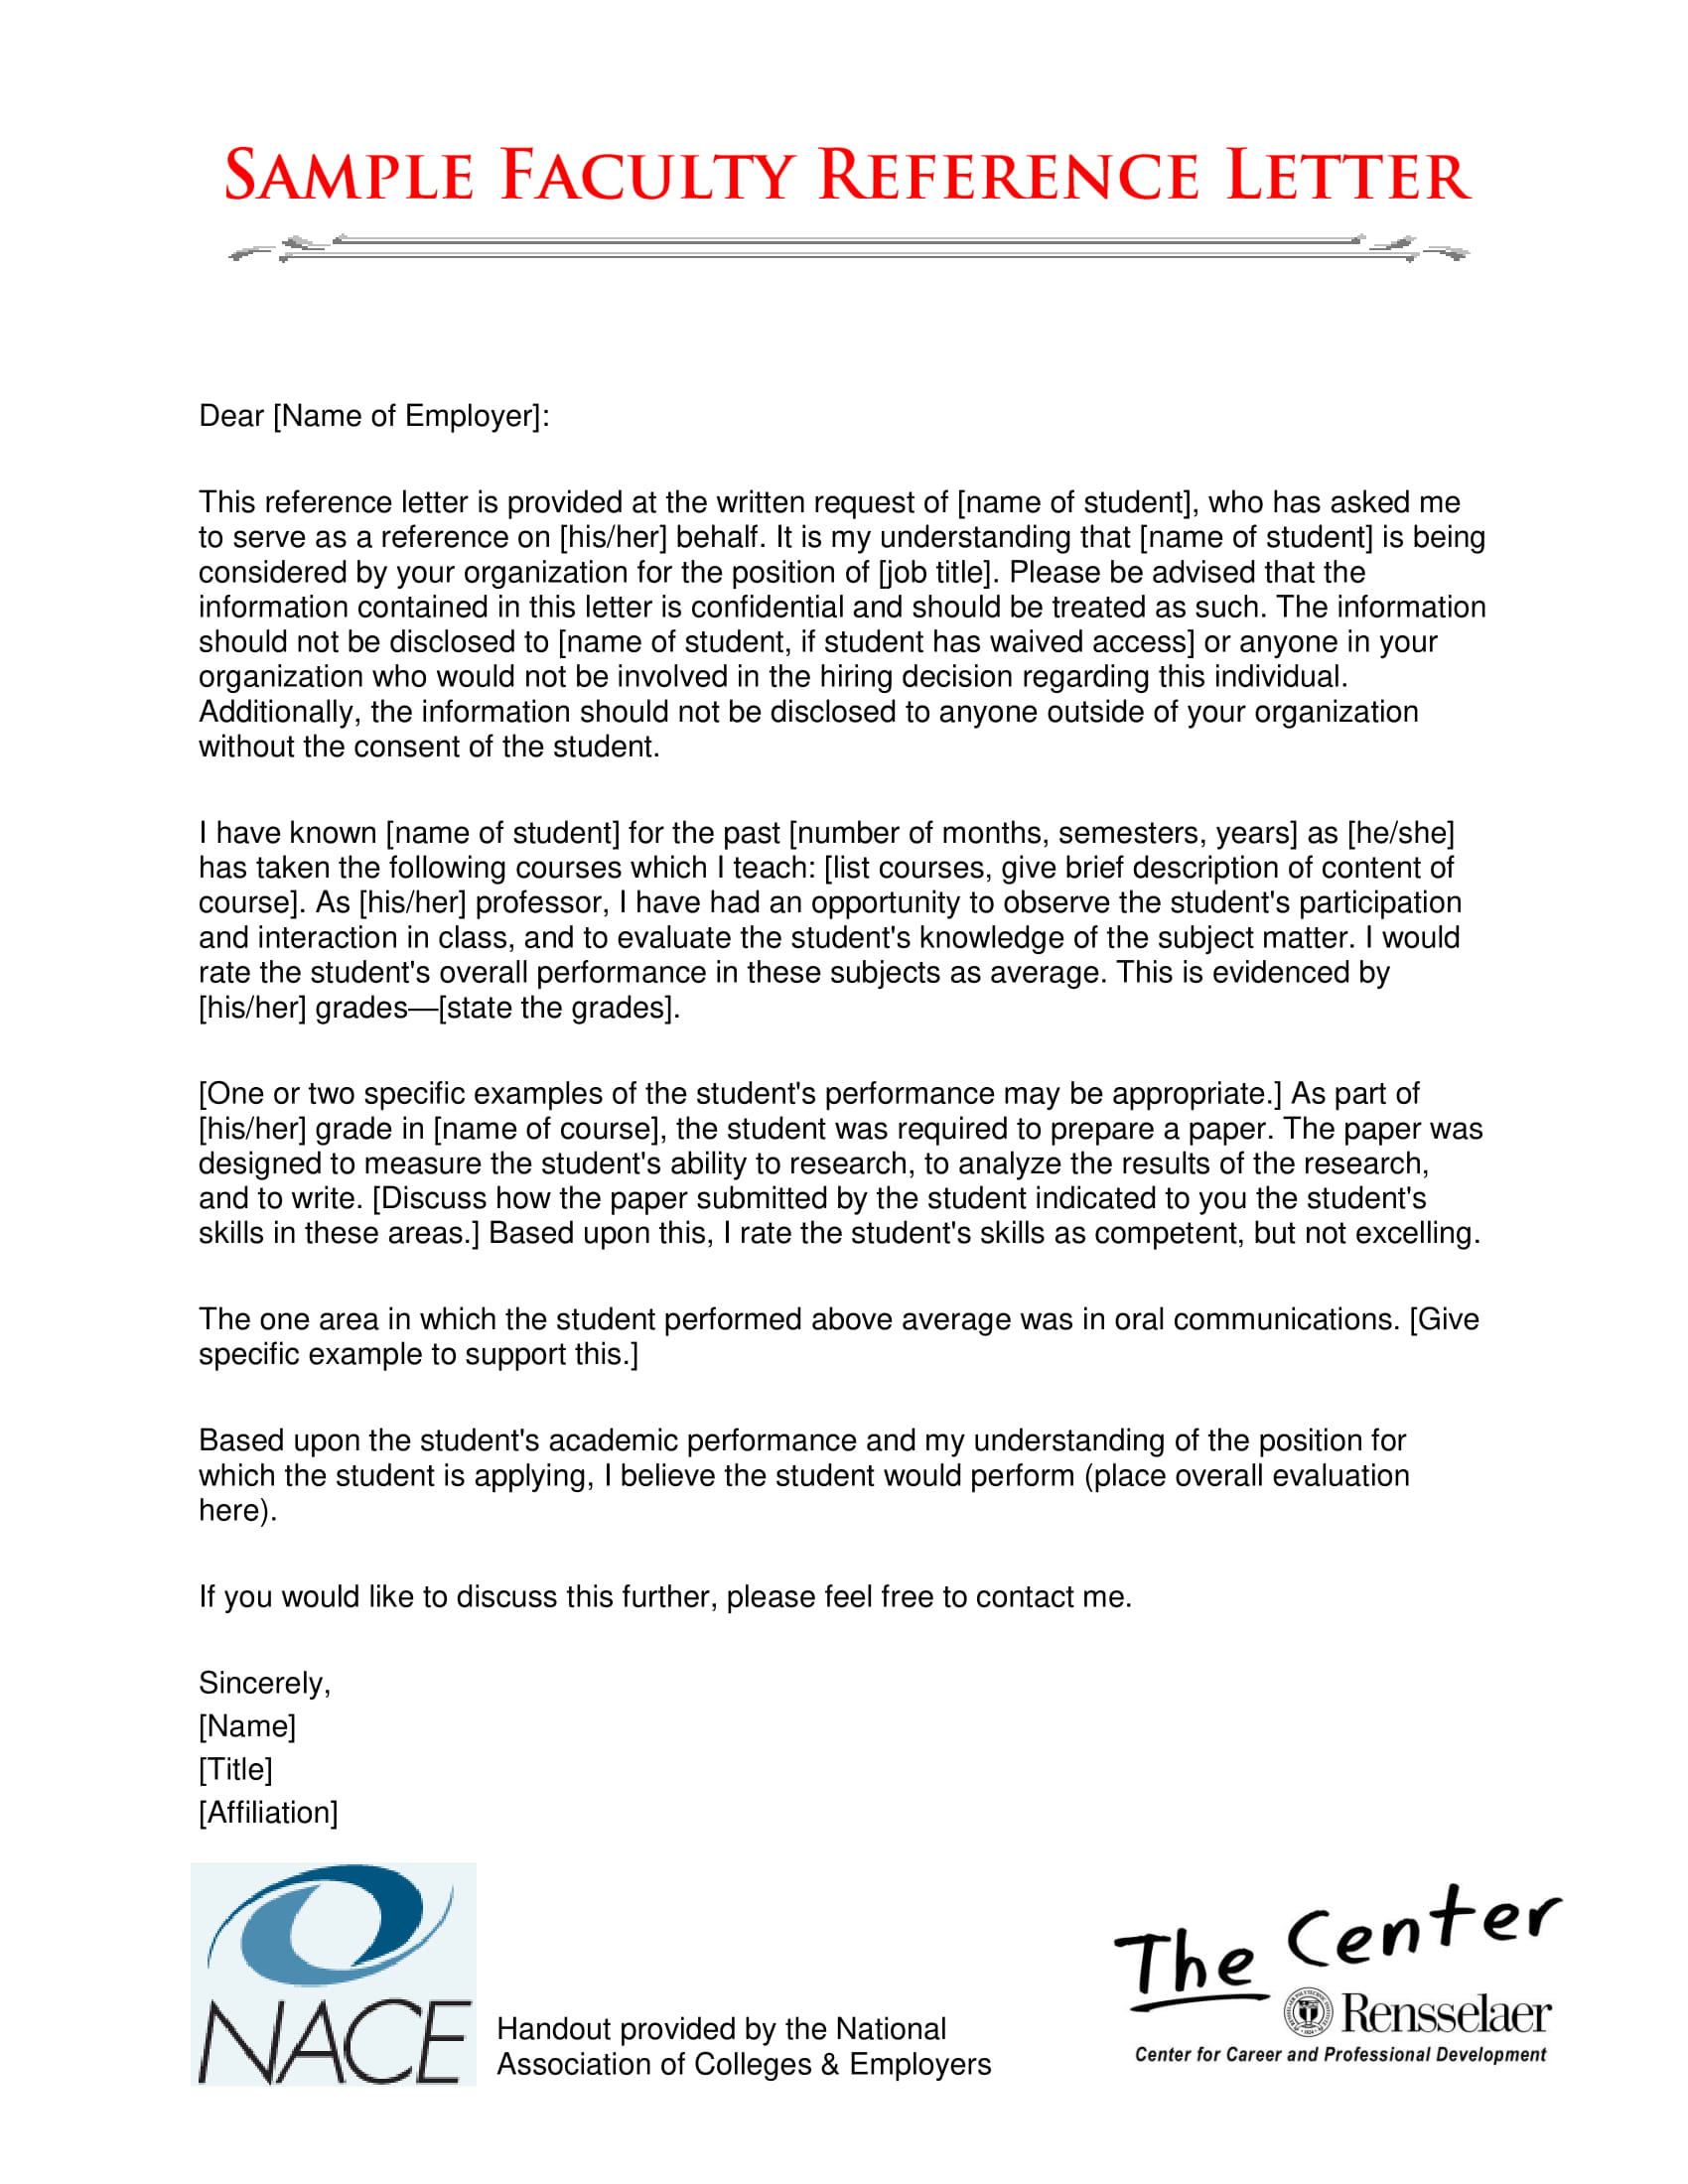 sample faculty reference letter 1